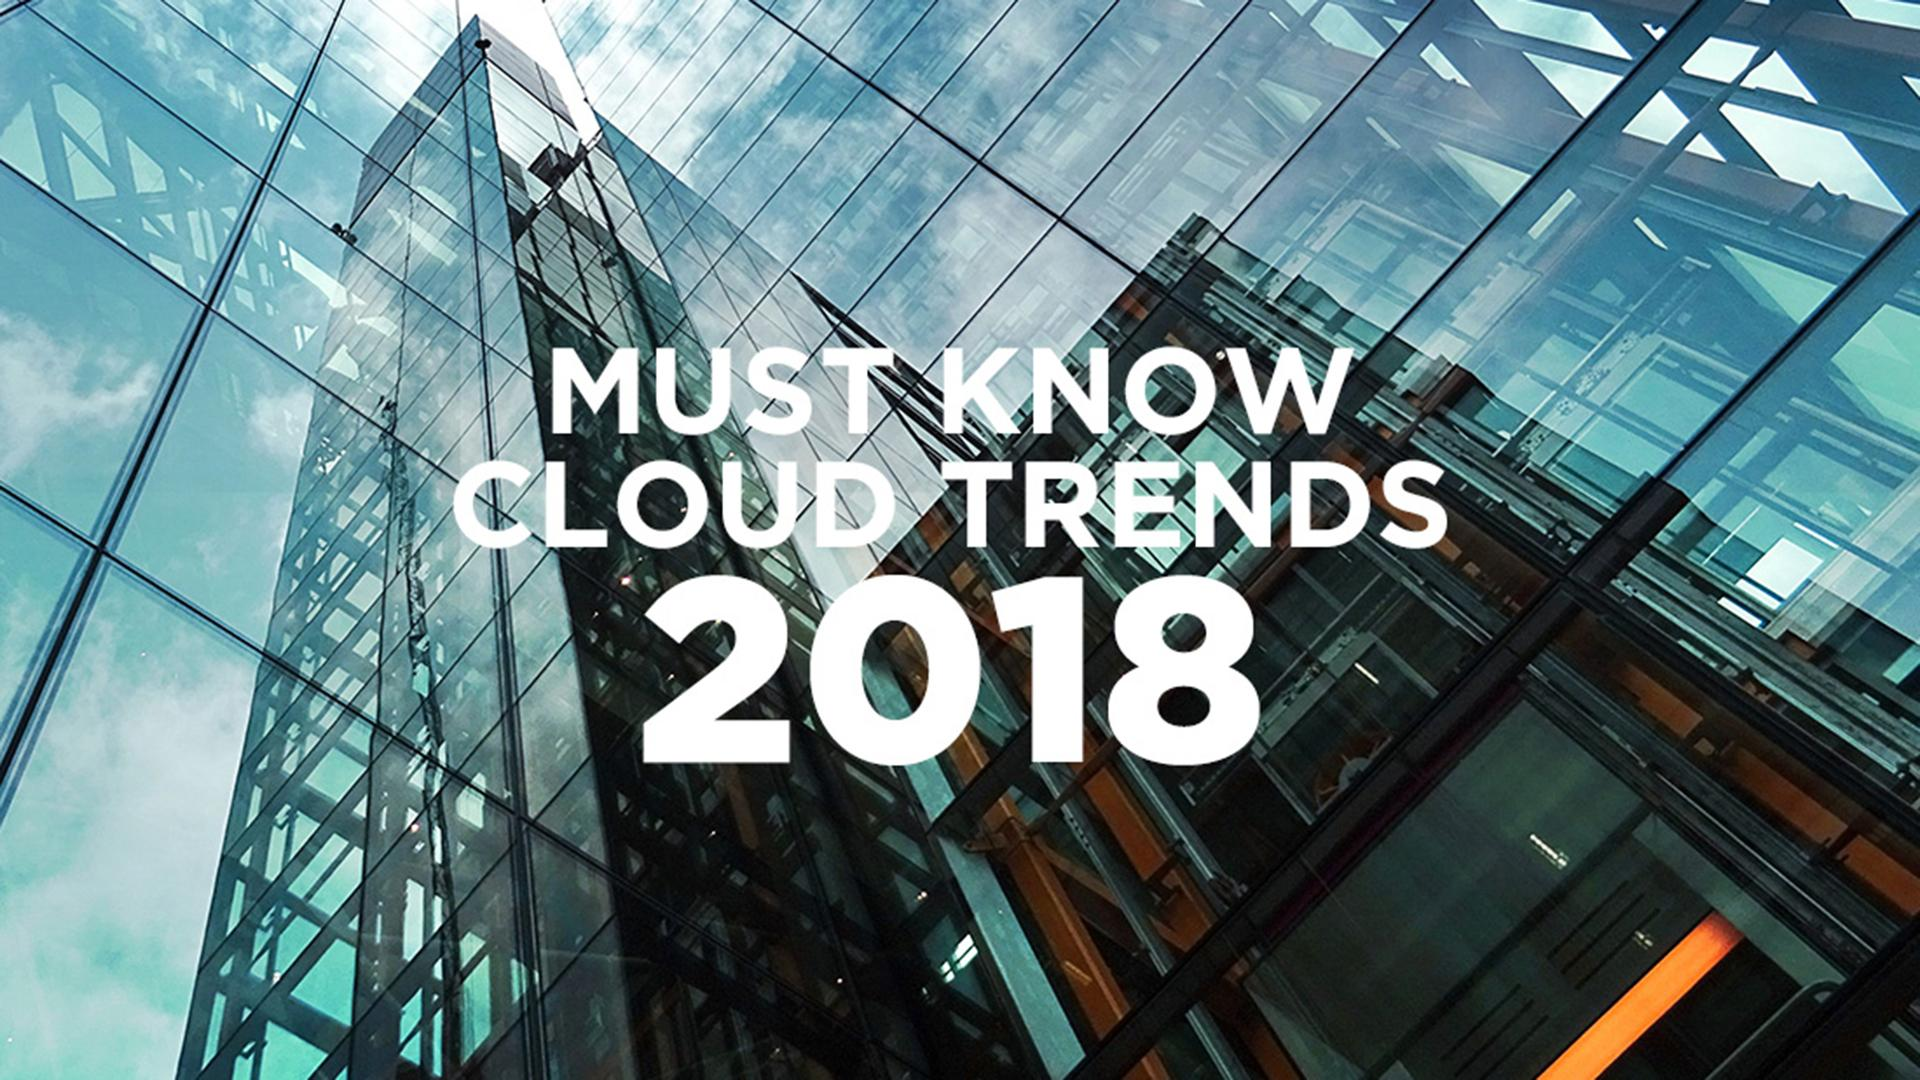 2018_0517_001_article_cloud_predictions_and_trends_2018_001.jpg